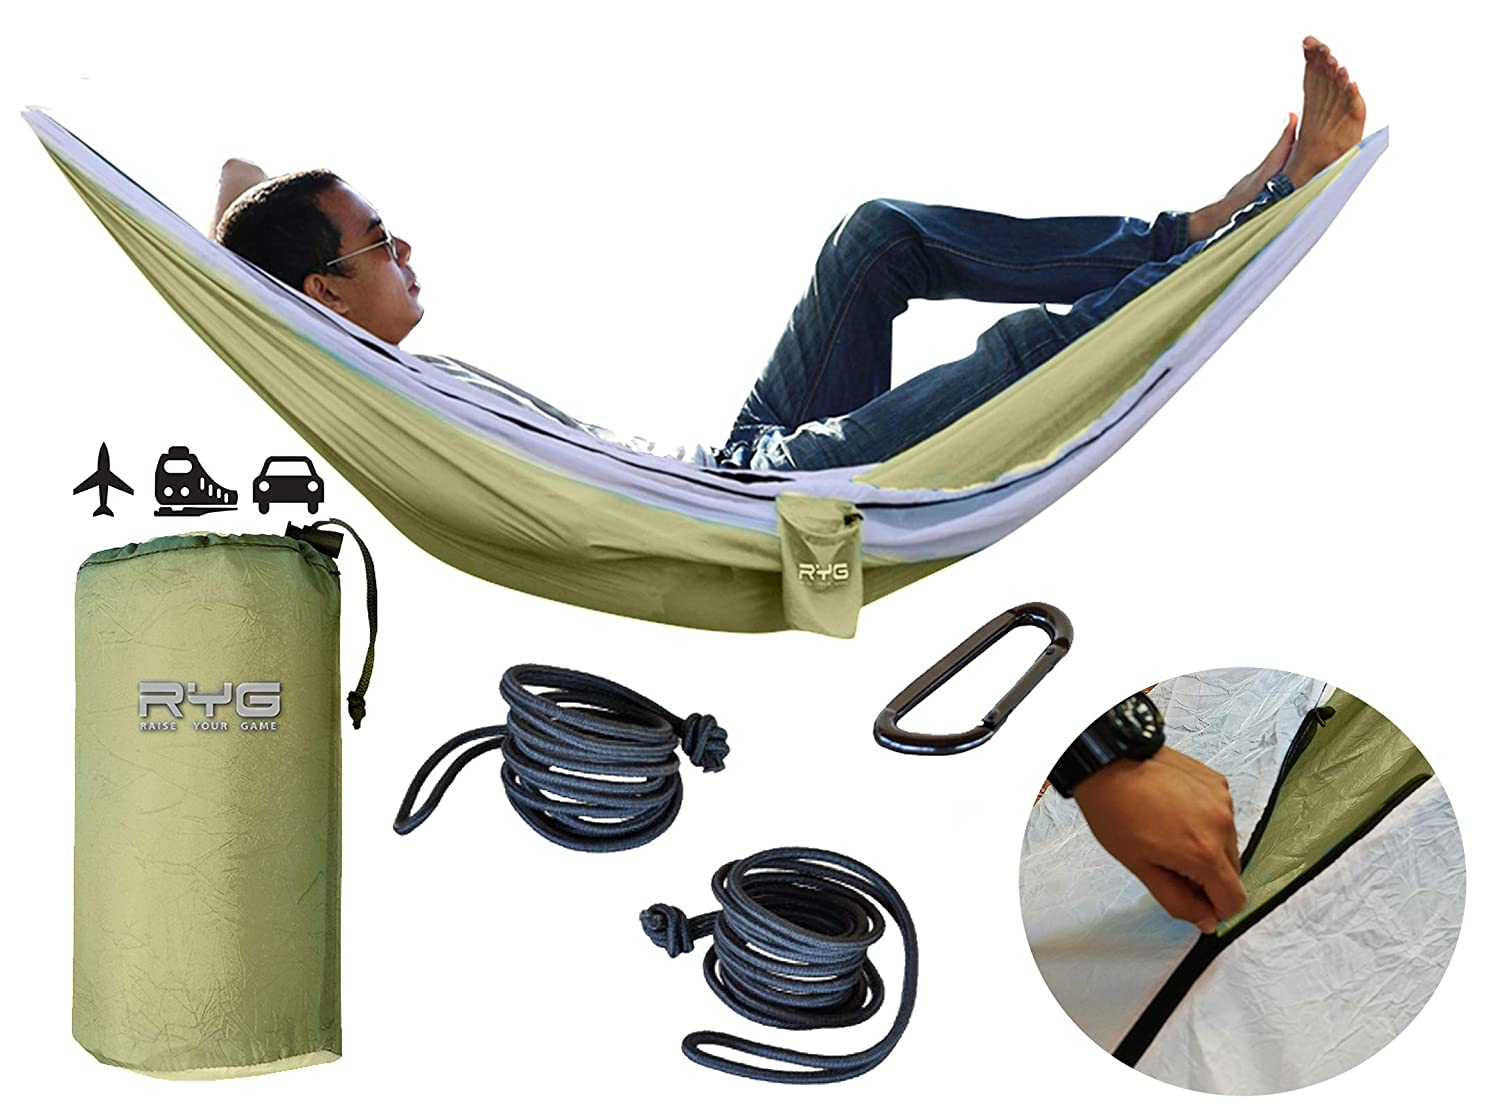 Raise Your Game RYG Portable Hammock, Heavy Duty Lightweight Parachute Quality Fabric, Indoor Outdoor Weatherproof Single Double Hammocks, Adjustable Camping Swing for Hiking Travel Olive Green